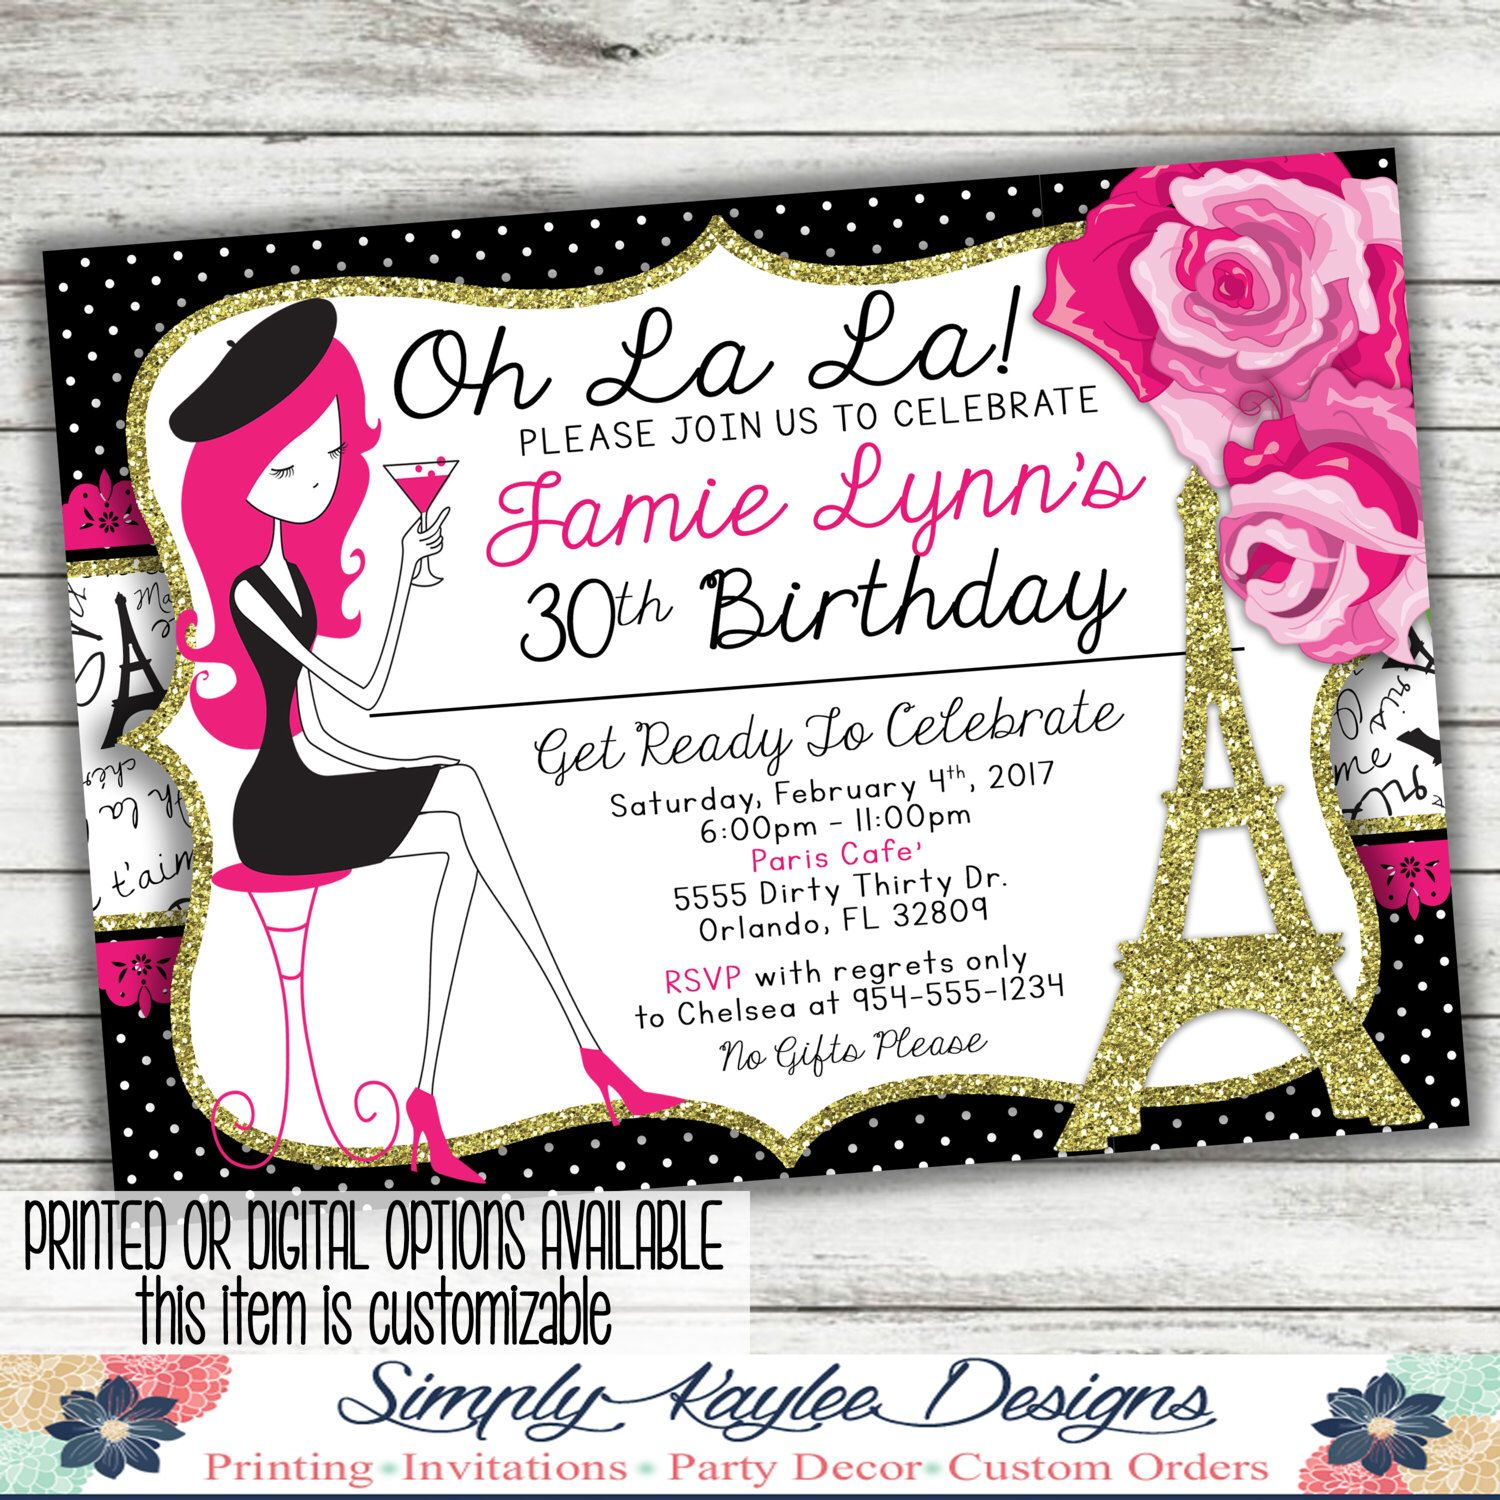 Oh La La Paris Themed Birthday Party Invitation by ...